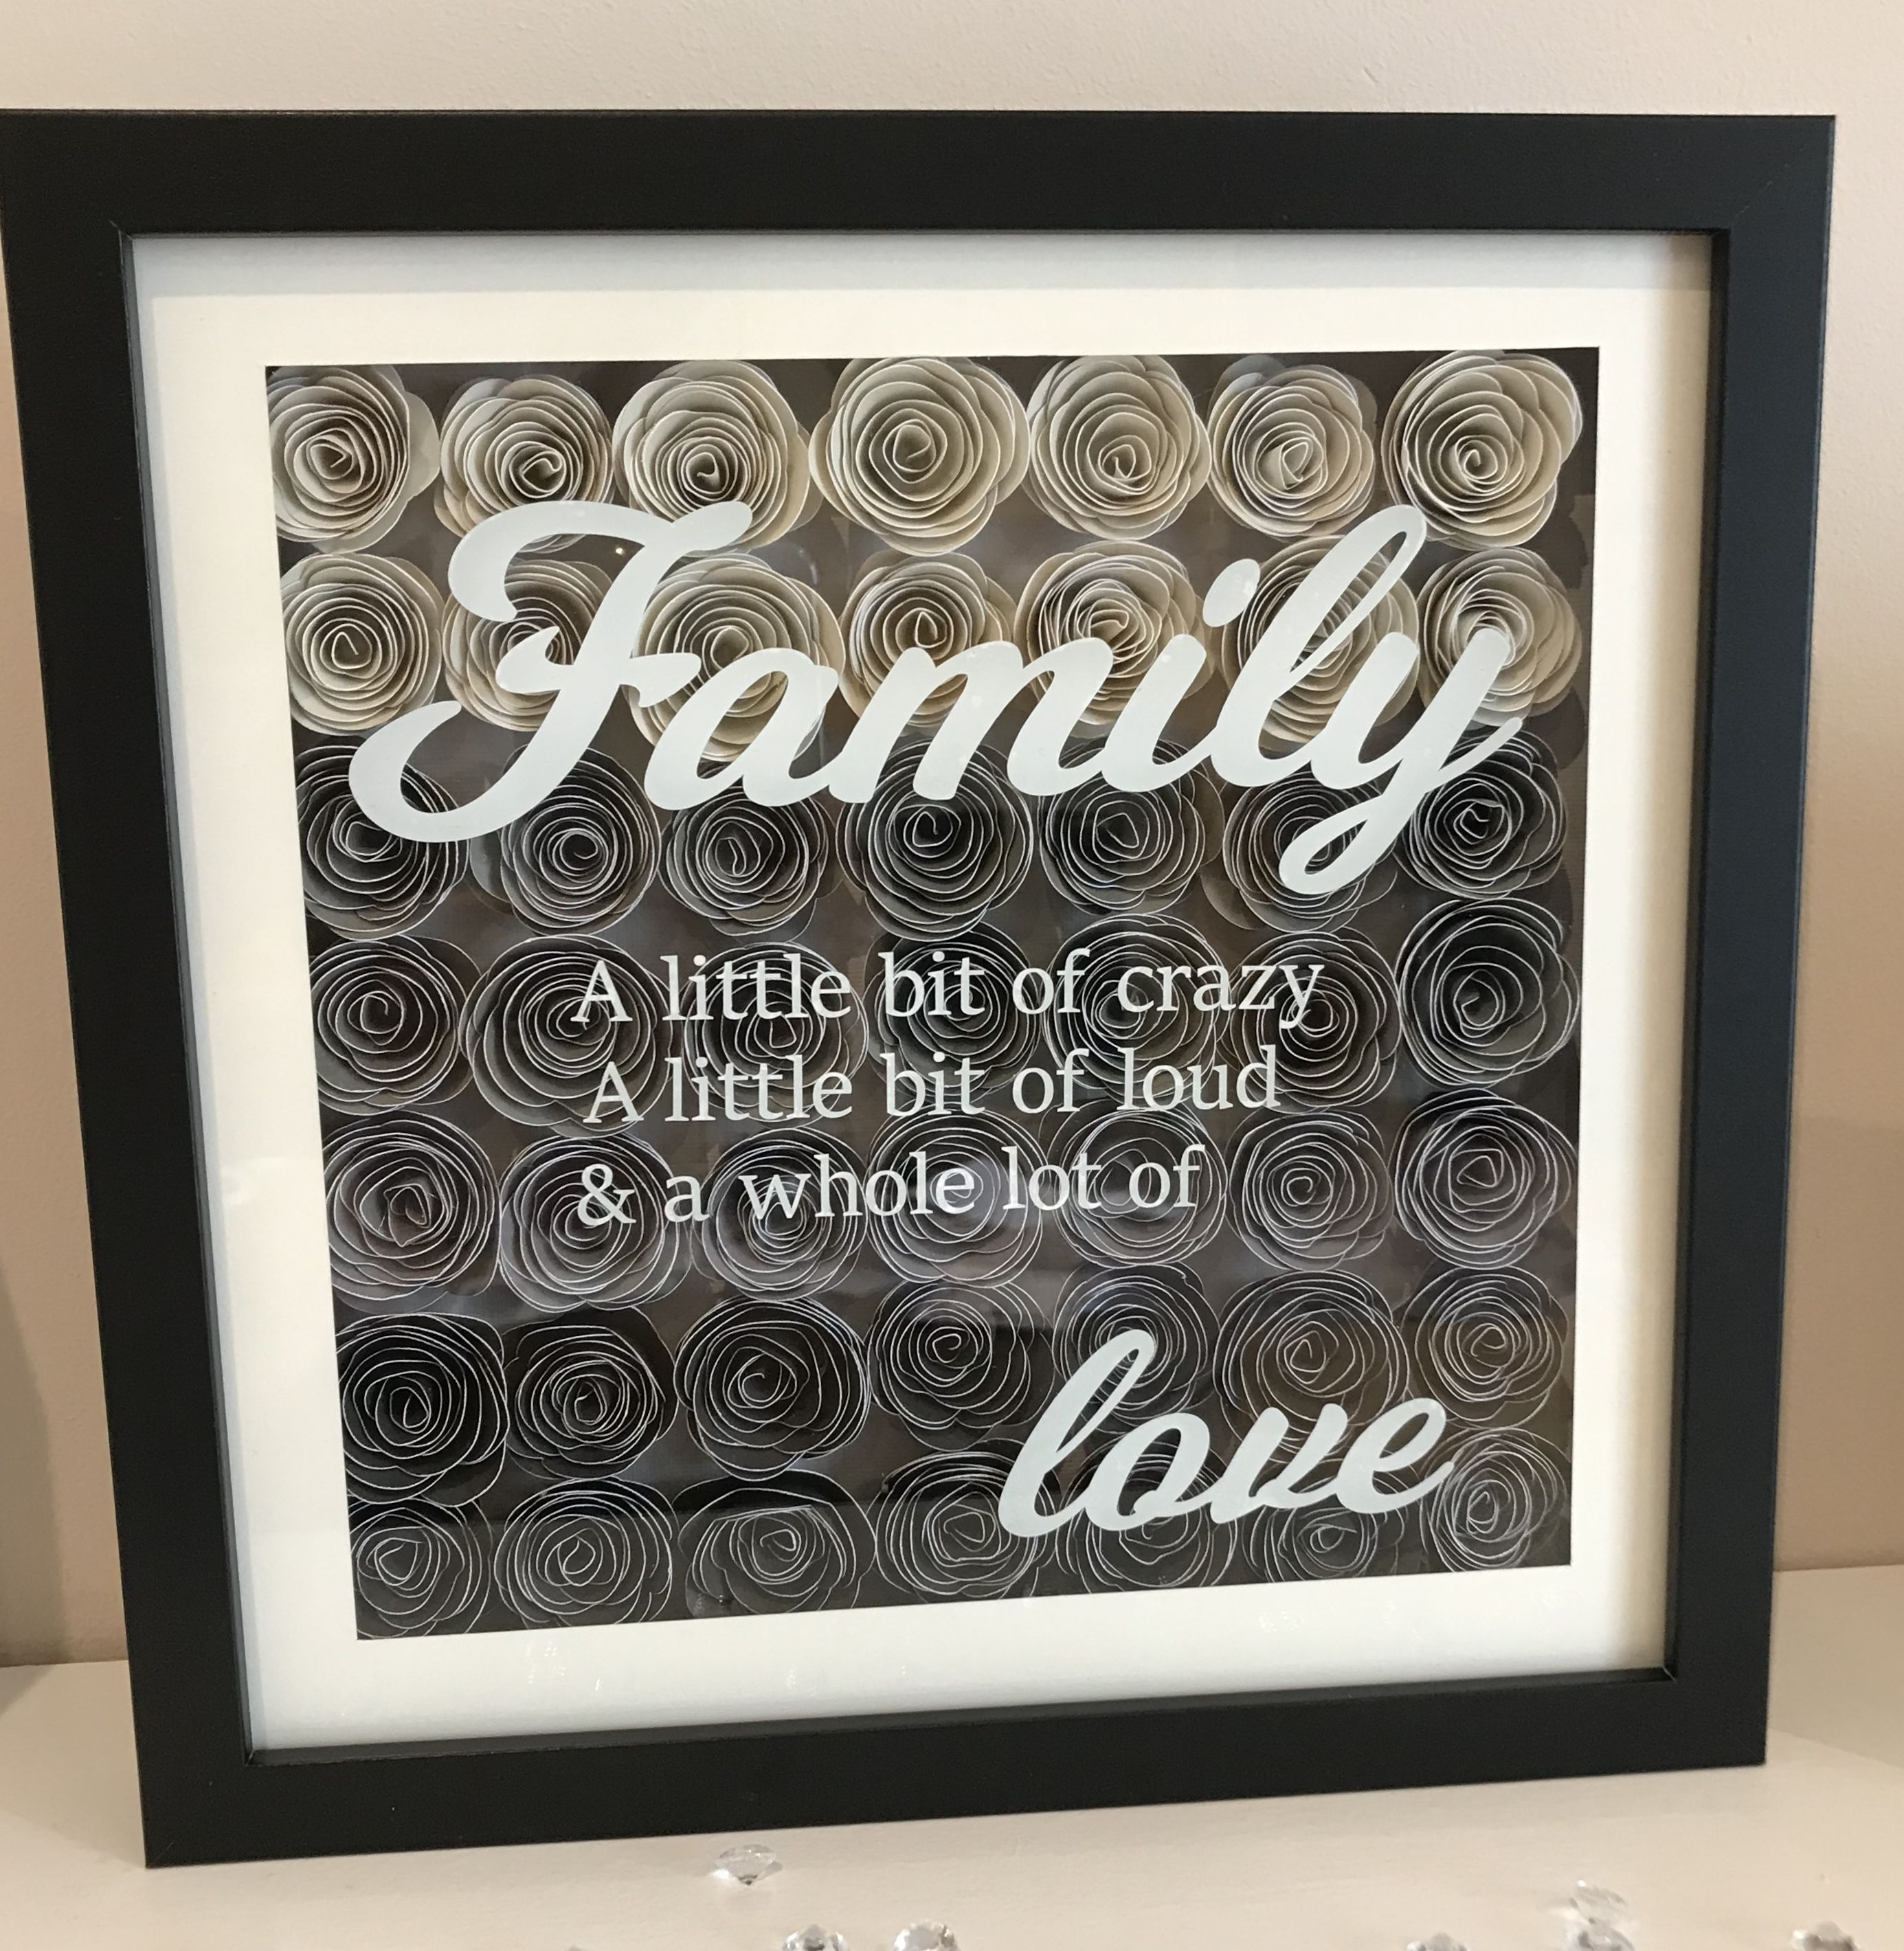 Flower Shadow Box Frame With Family Quote This Time In Shades Of Grey Finished In A Black Frame Flower Shadow Box Shadow Box Frames Shadow Box Art